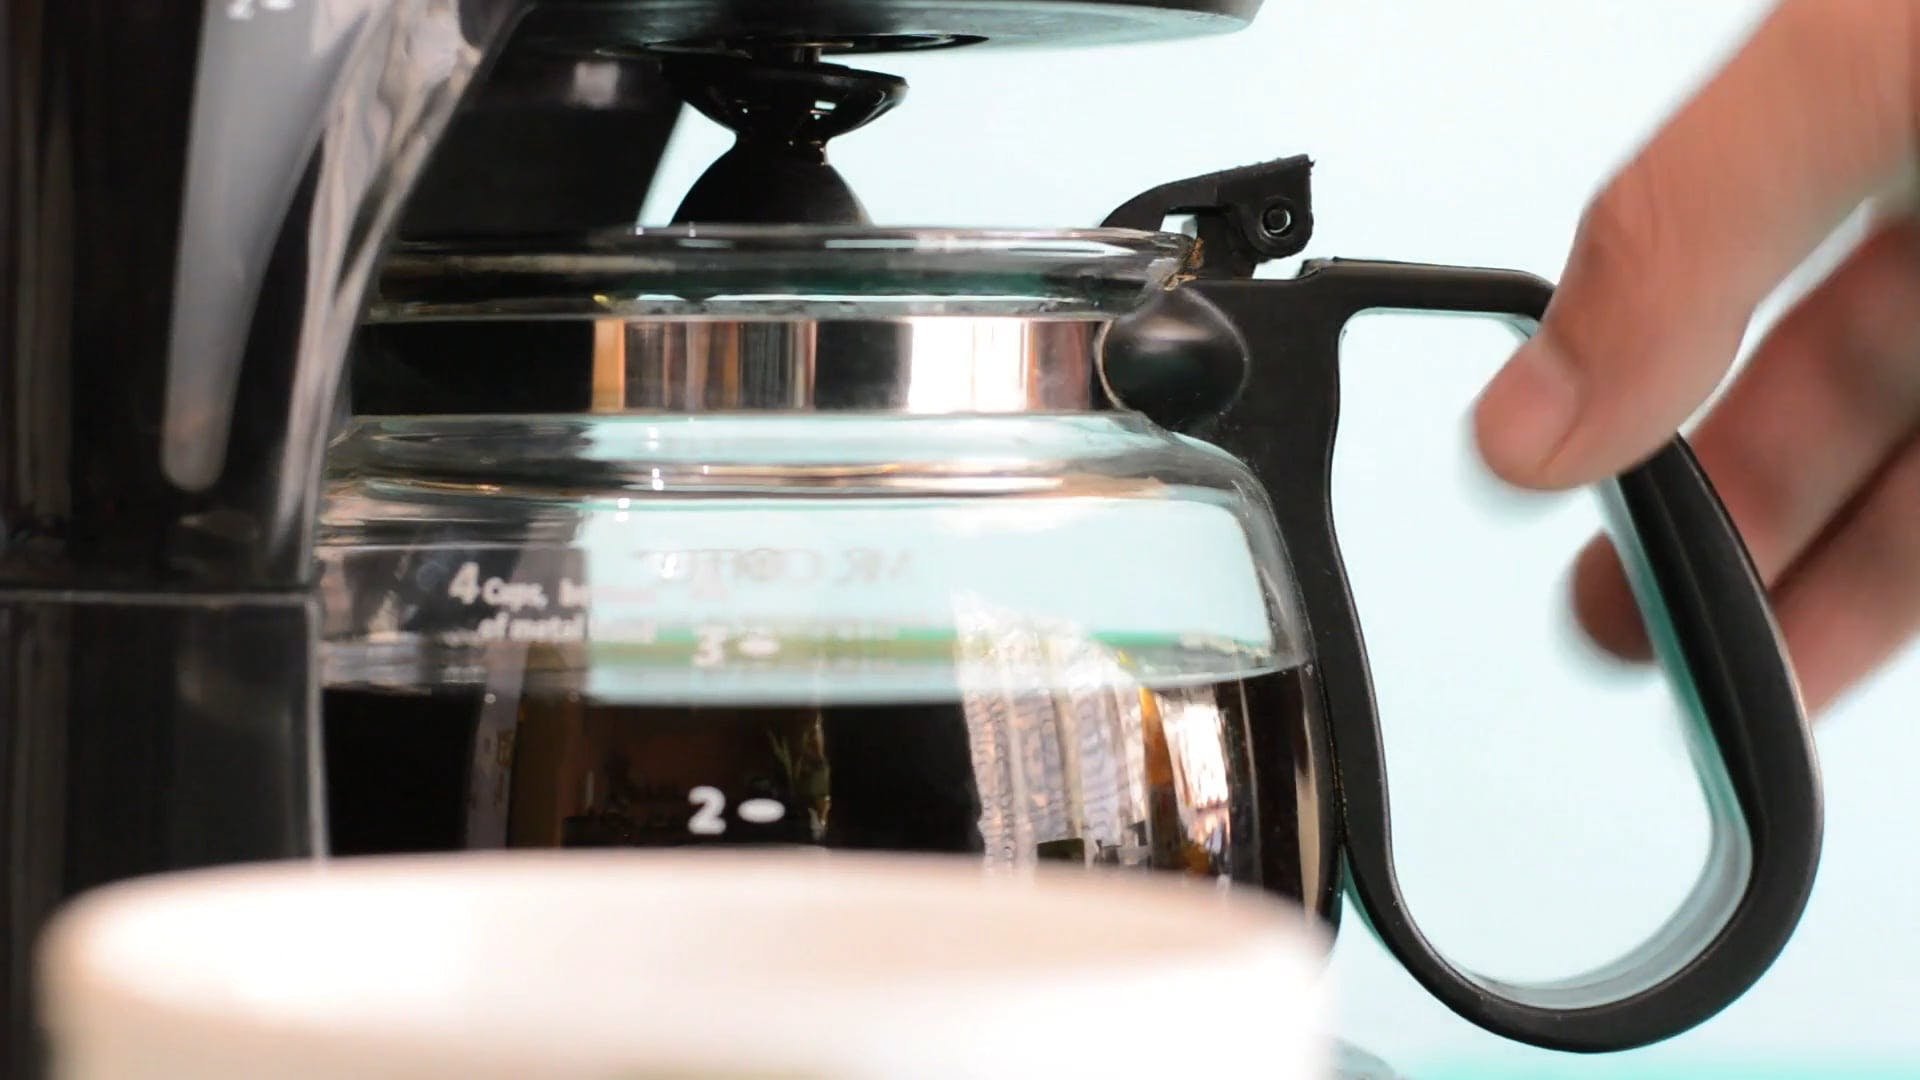 Pouring Coffee On Cup